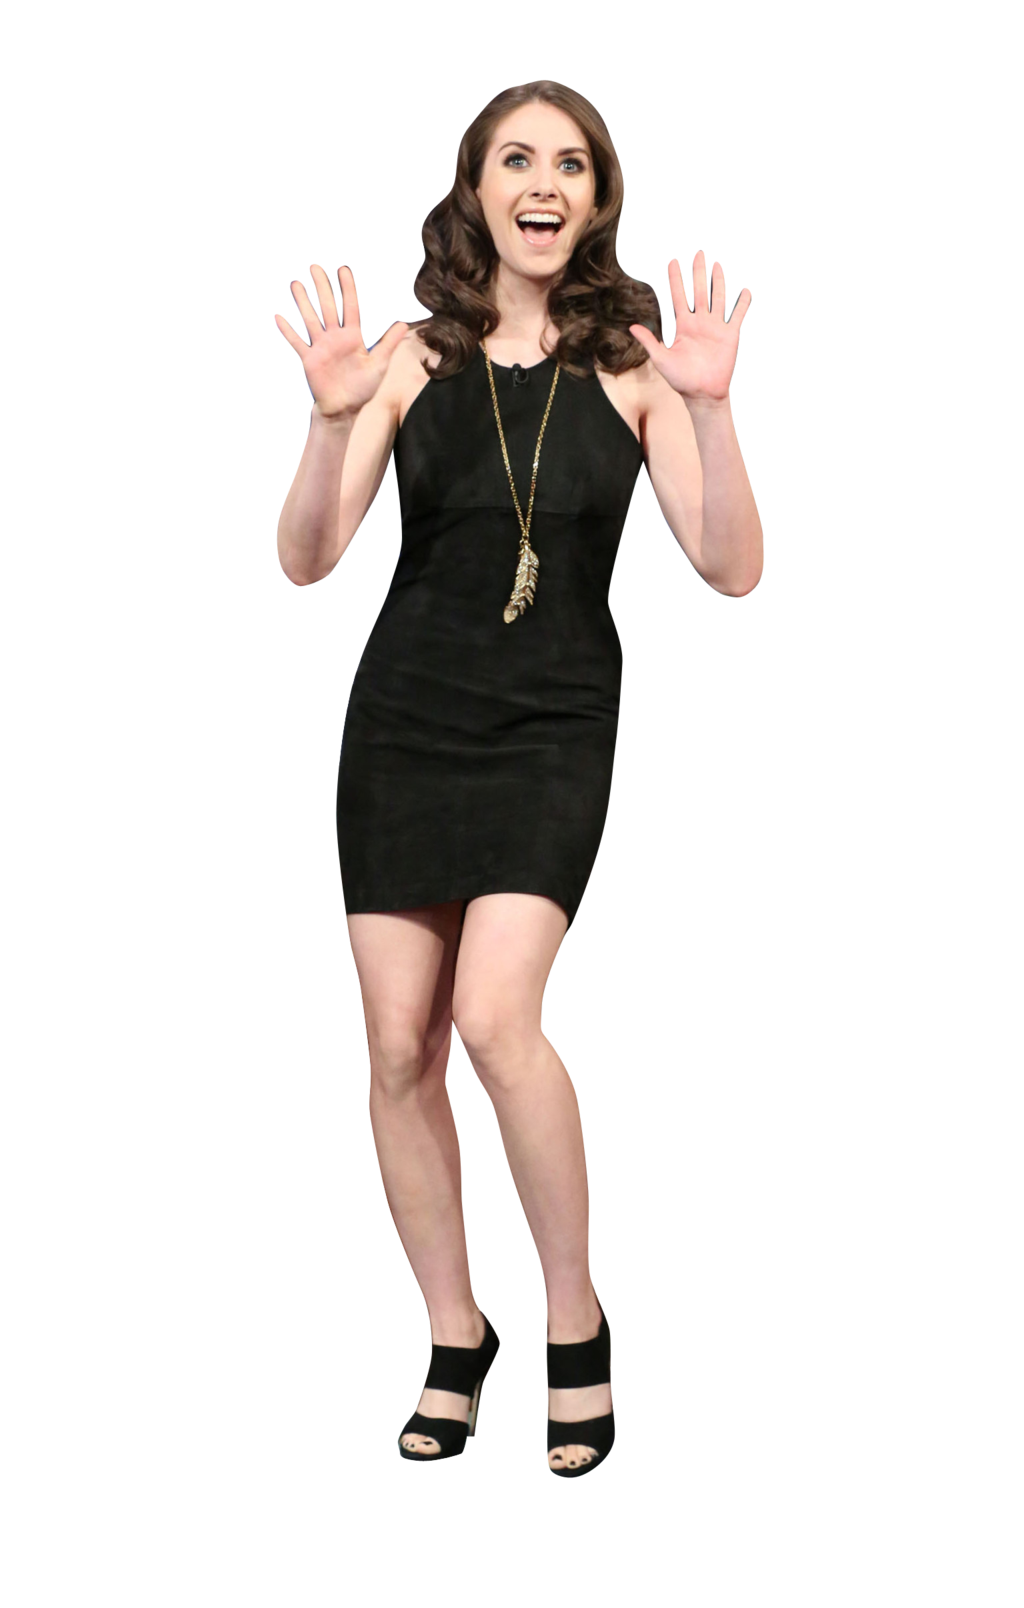 Women png images. Pic transparent pluspng stock